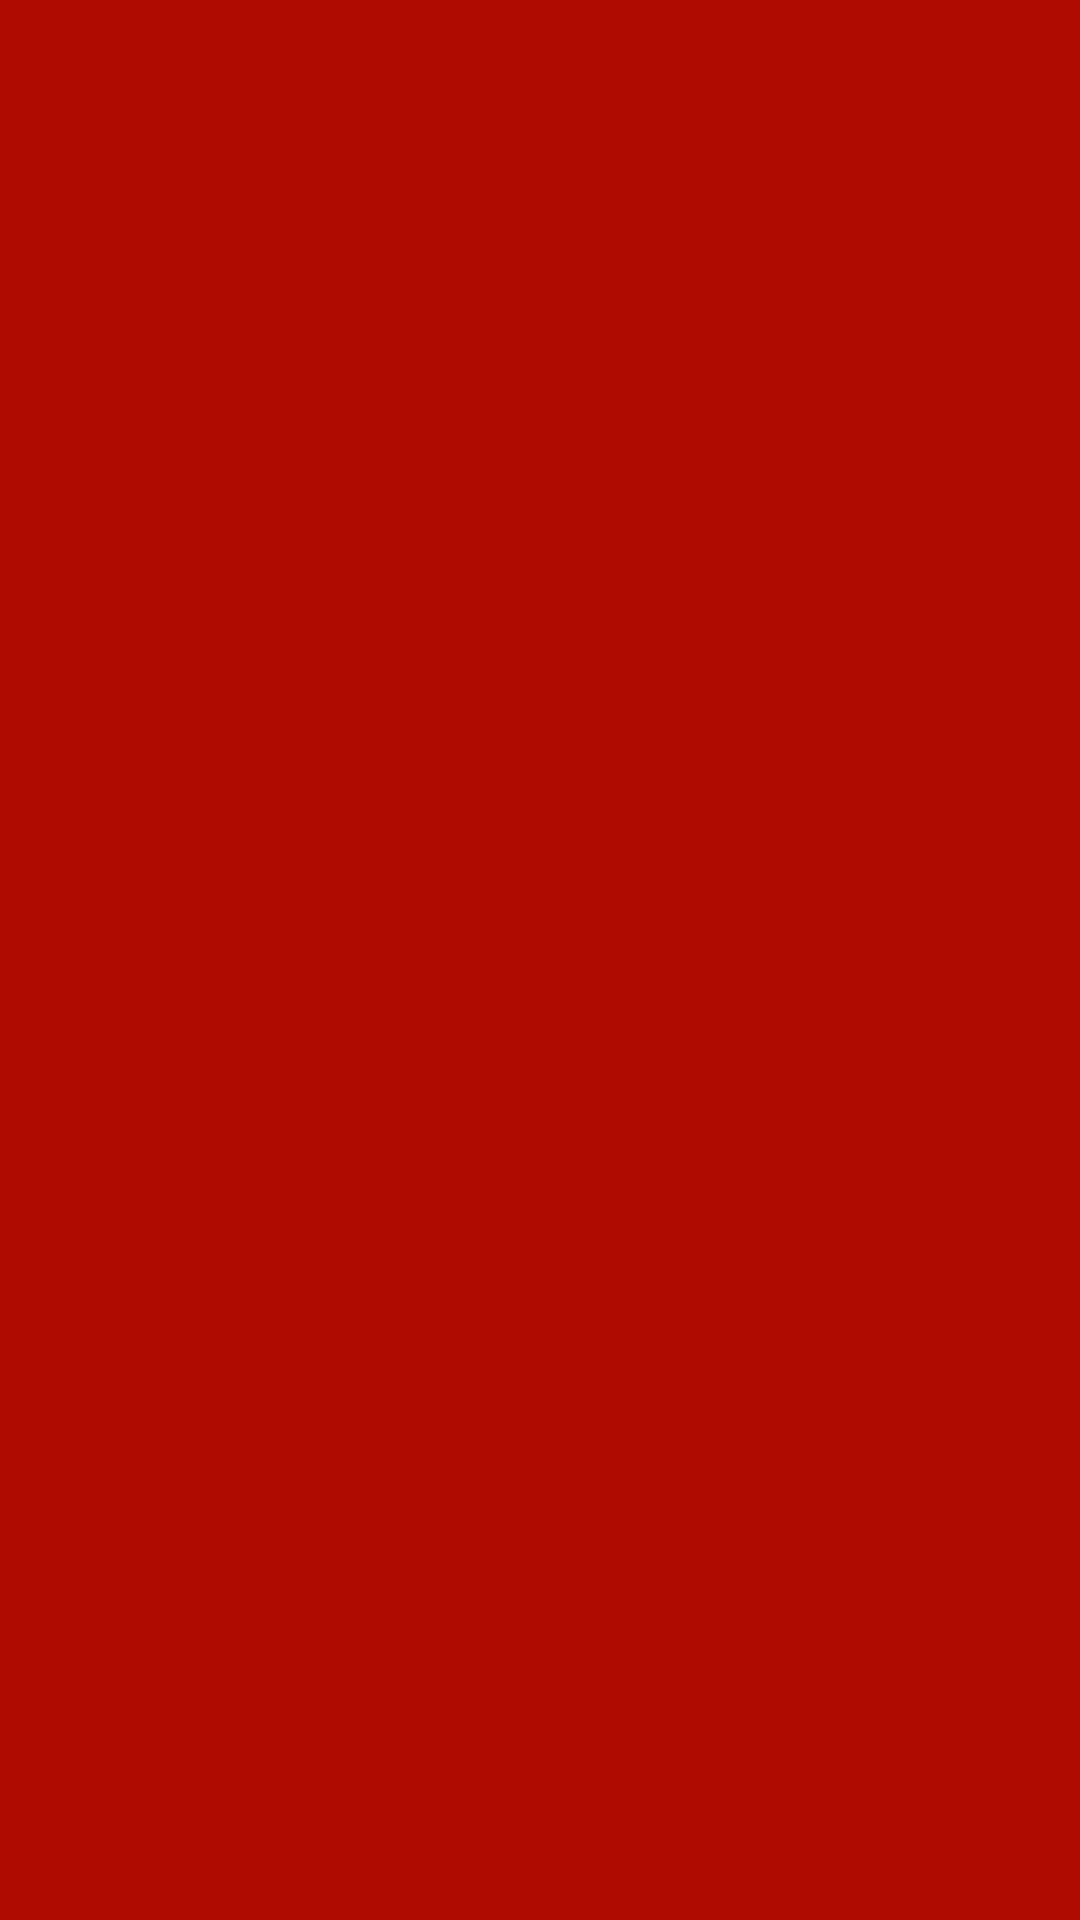 1080x1920 Mordant Red 19 Solid Color Background